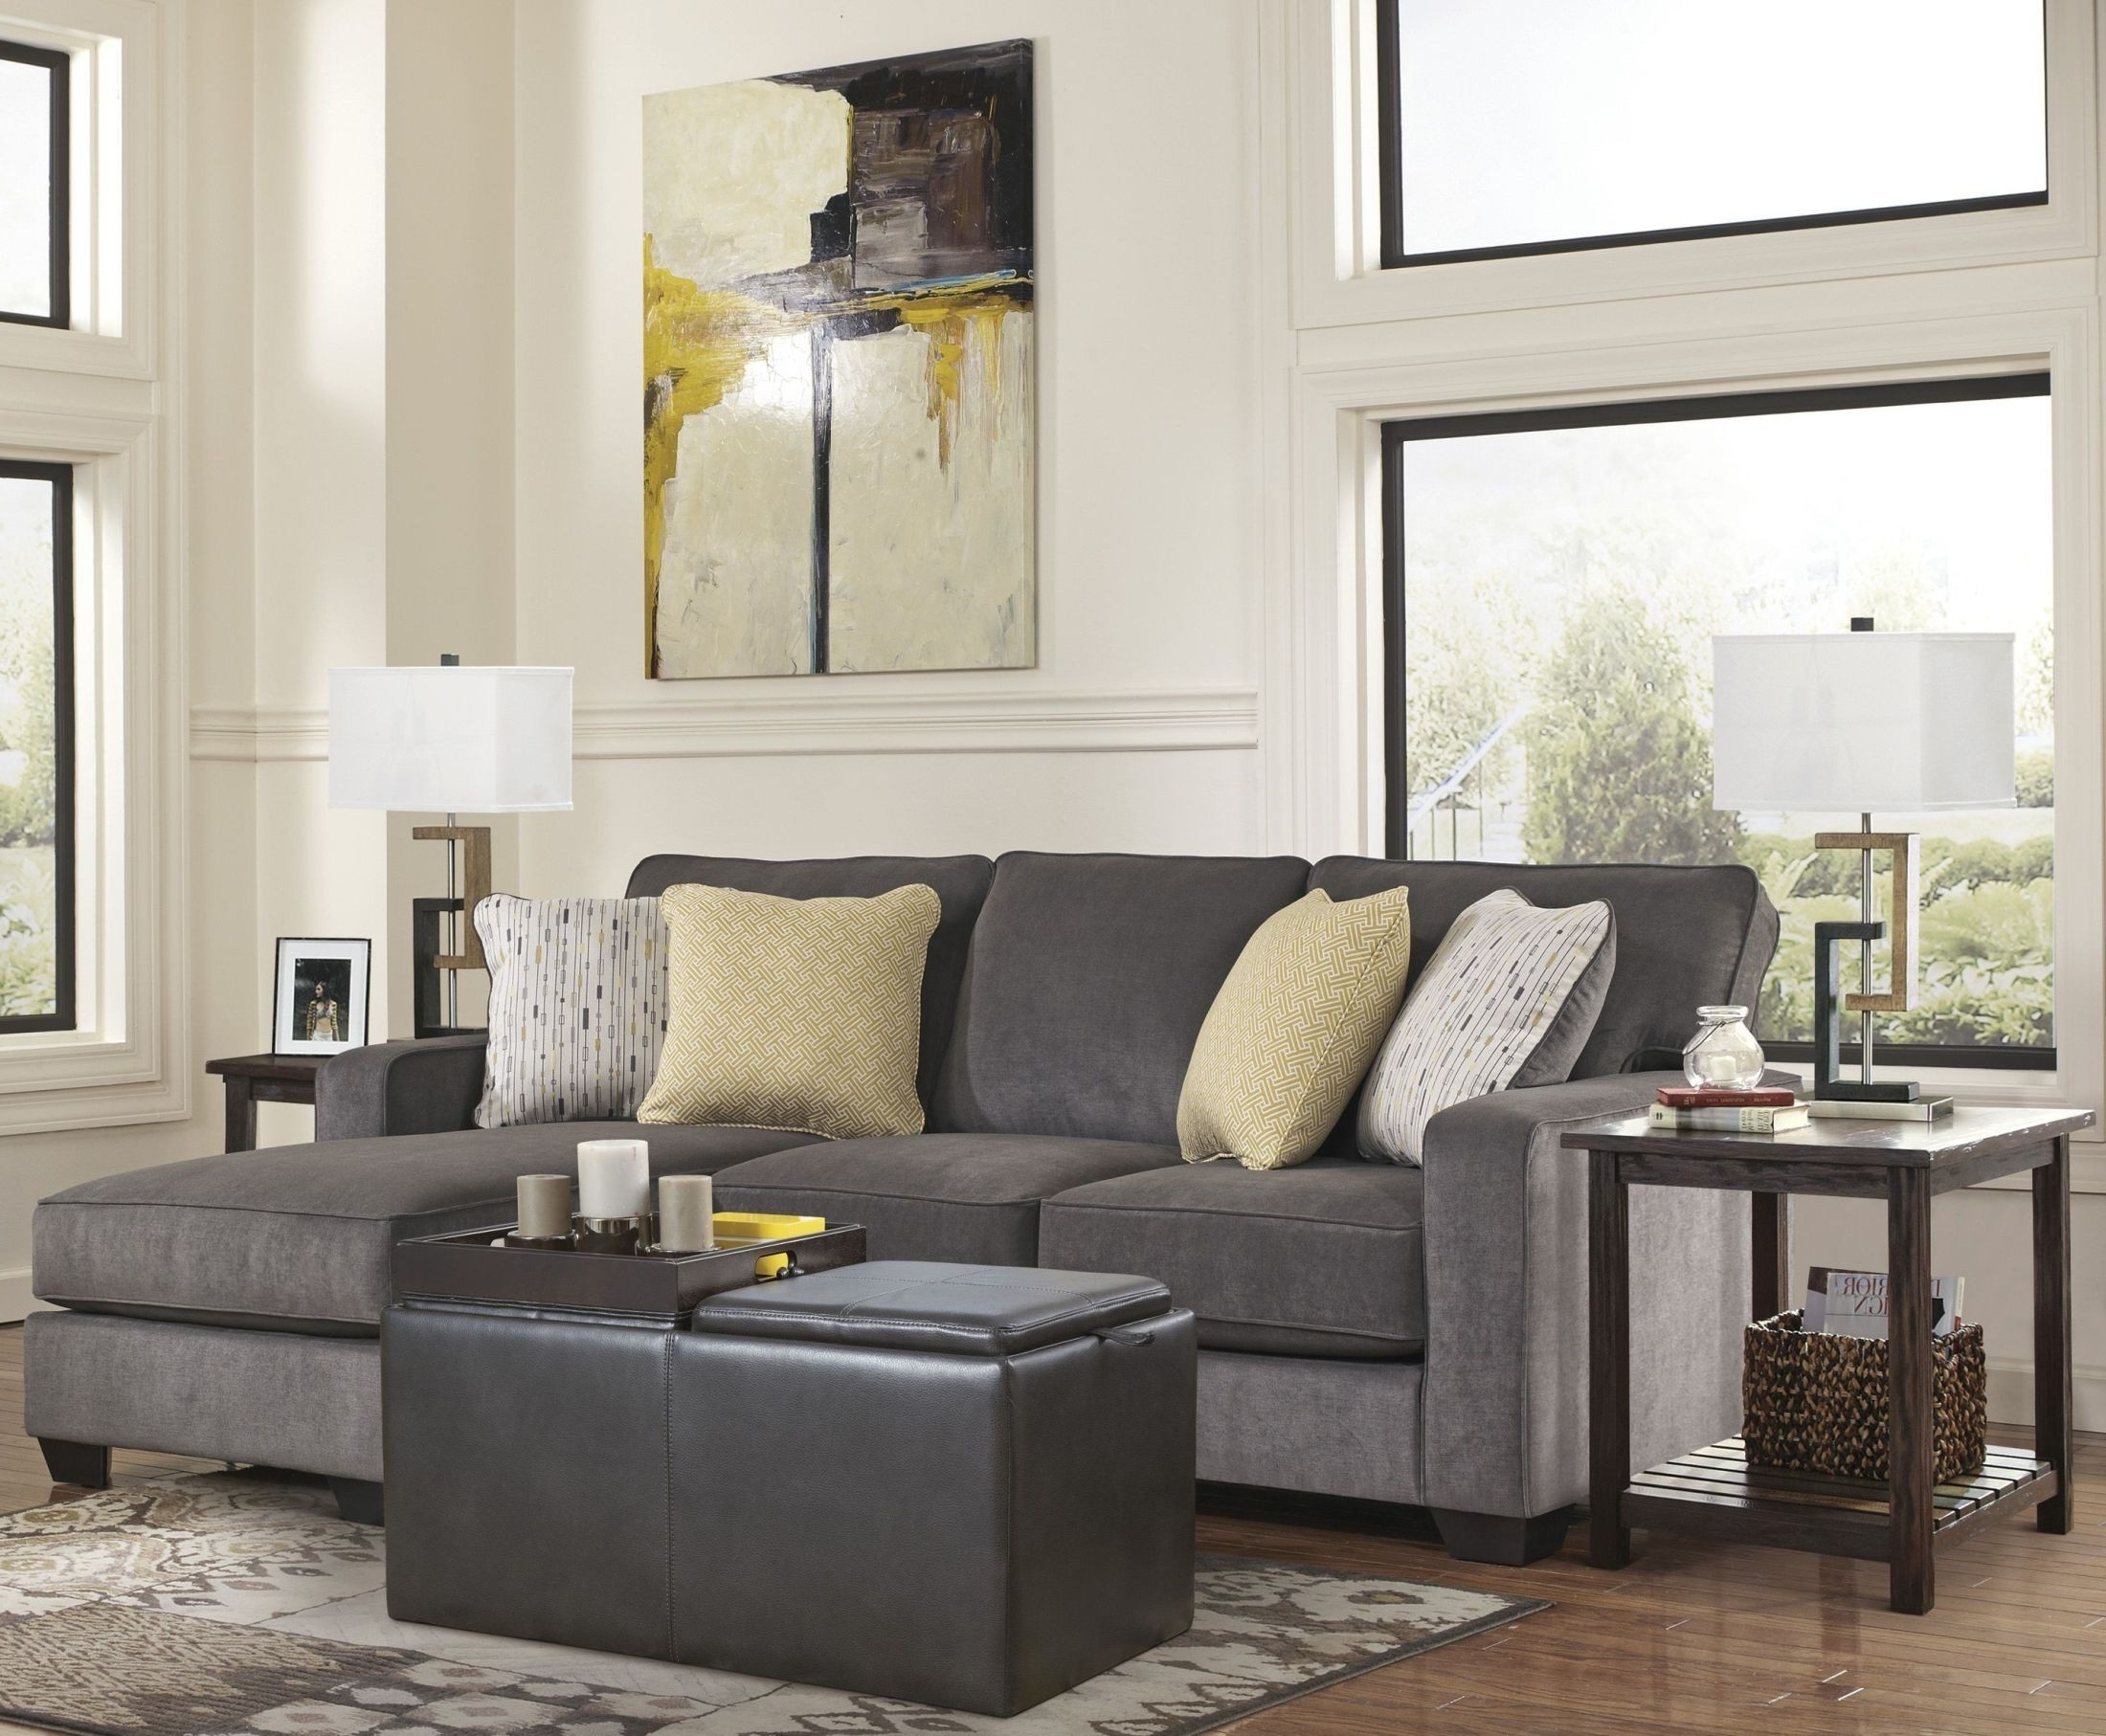 Hodan Marble Sofa With Chaise From Ashley (7970018) (View 5 of 15)